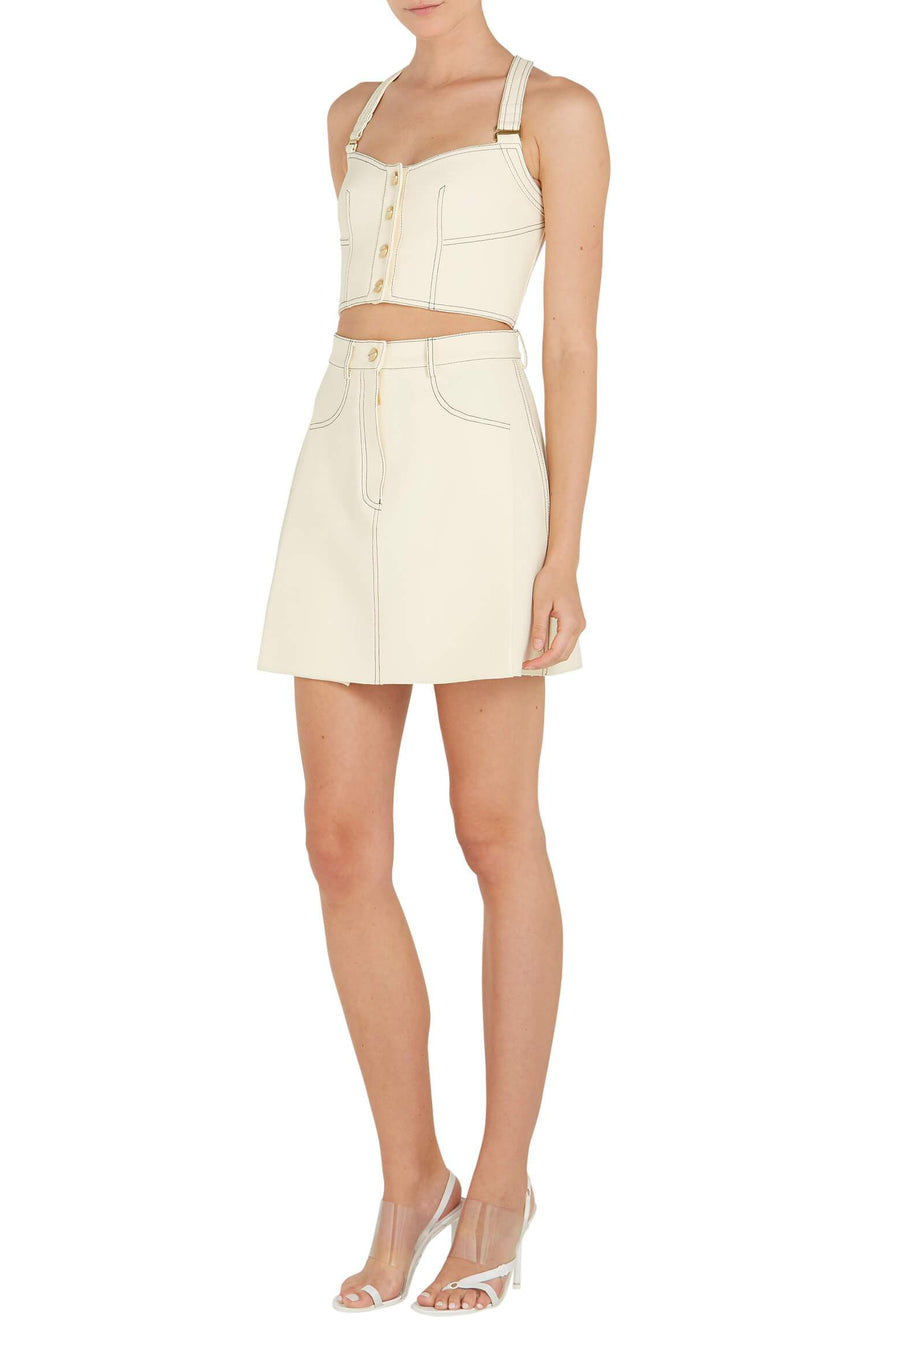 Dion Lee Bonded Crepe Stitch Mini Skirt in Butter from The New Trend